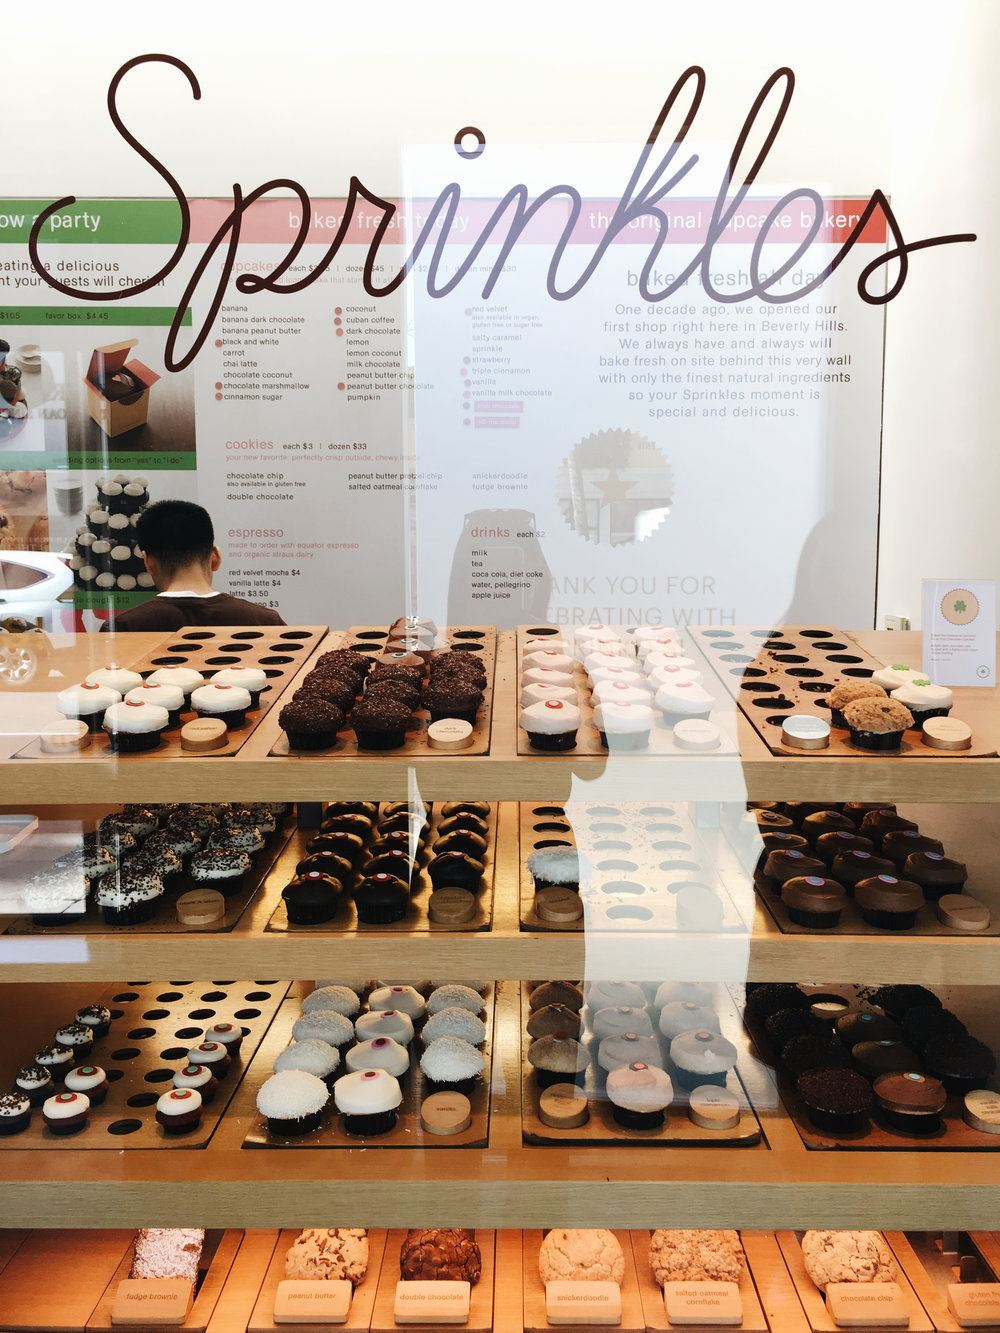 sprinkles-los-angeles-01a.jpg